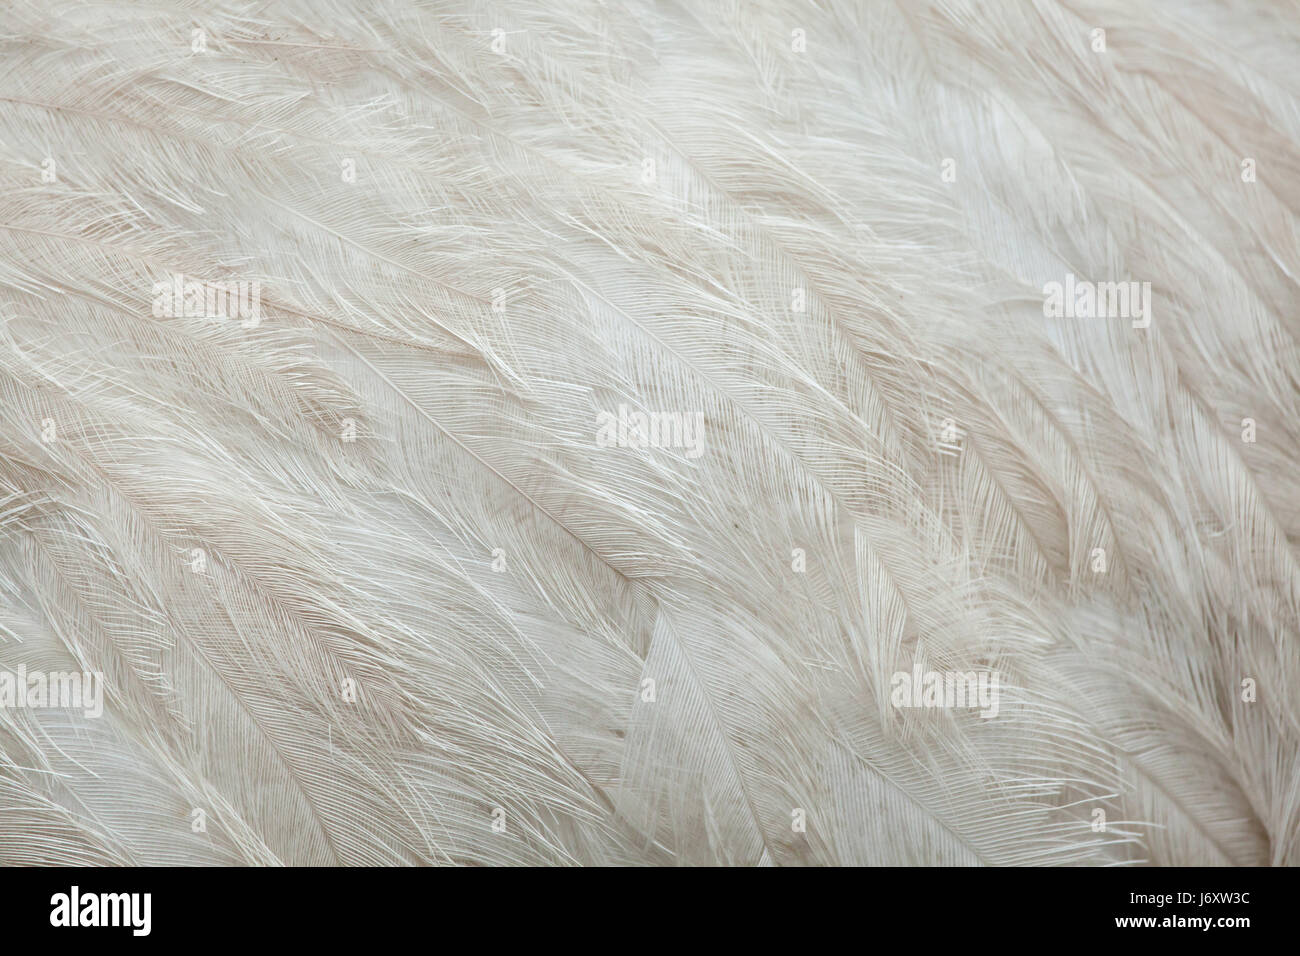 Greater rhea (Rhea americana), also known as the common rhea. White leucistic form. Plumage texture. - Stock Image